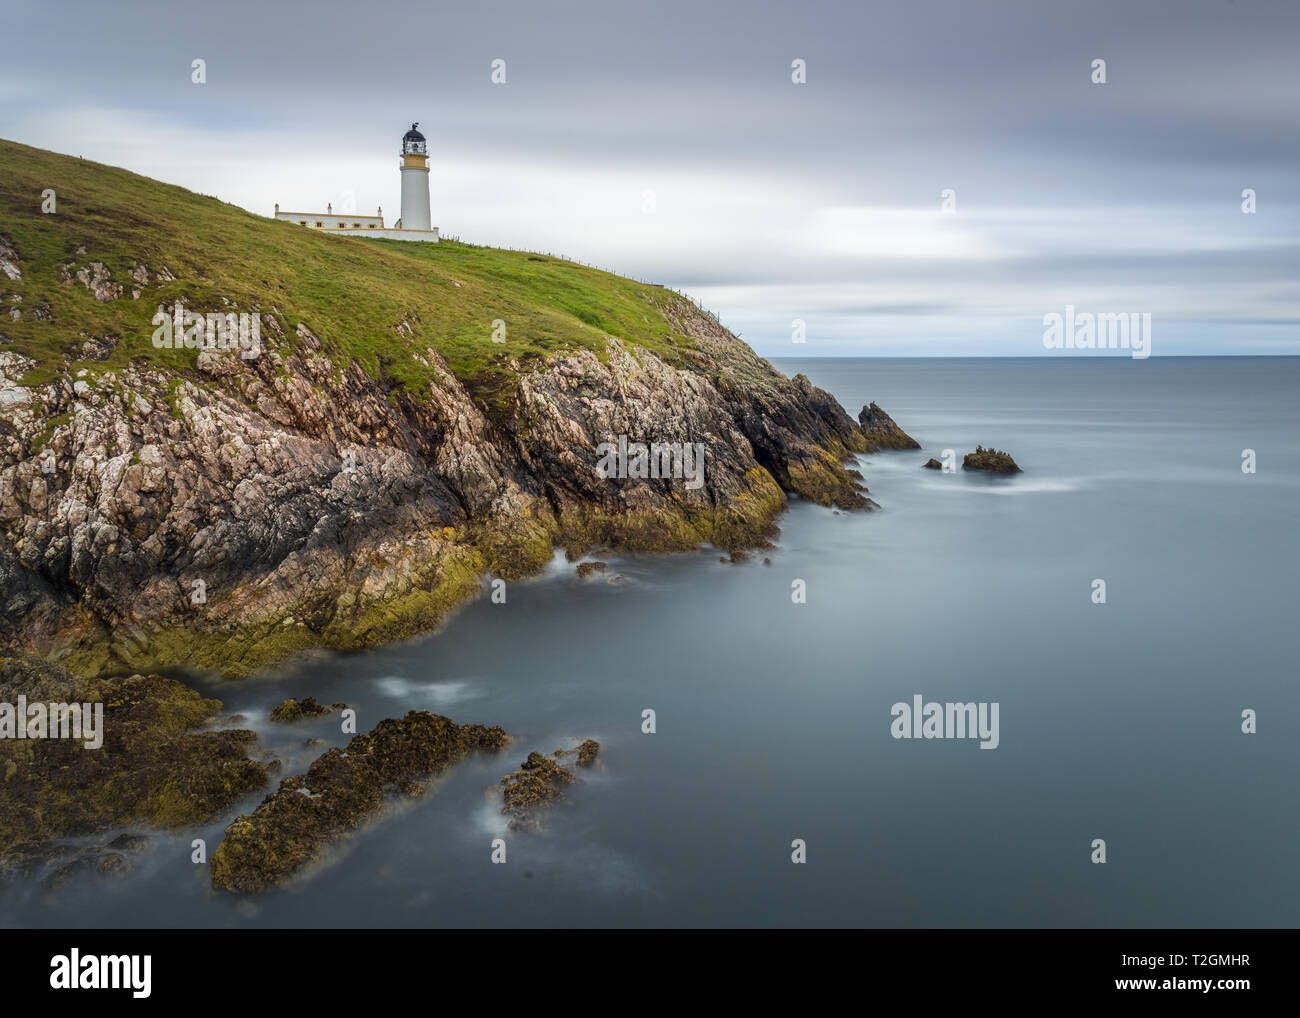 A long exposure of Tiumpan Head Lighthouse on a cloudy day, Isle of Harris, Outer Hebrides, Scotland, UK - Stock Image